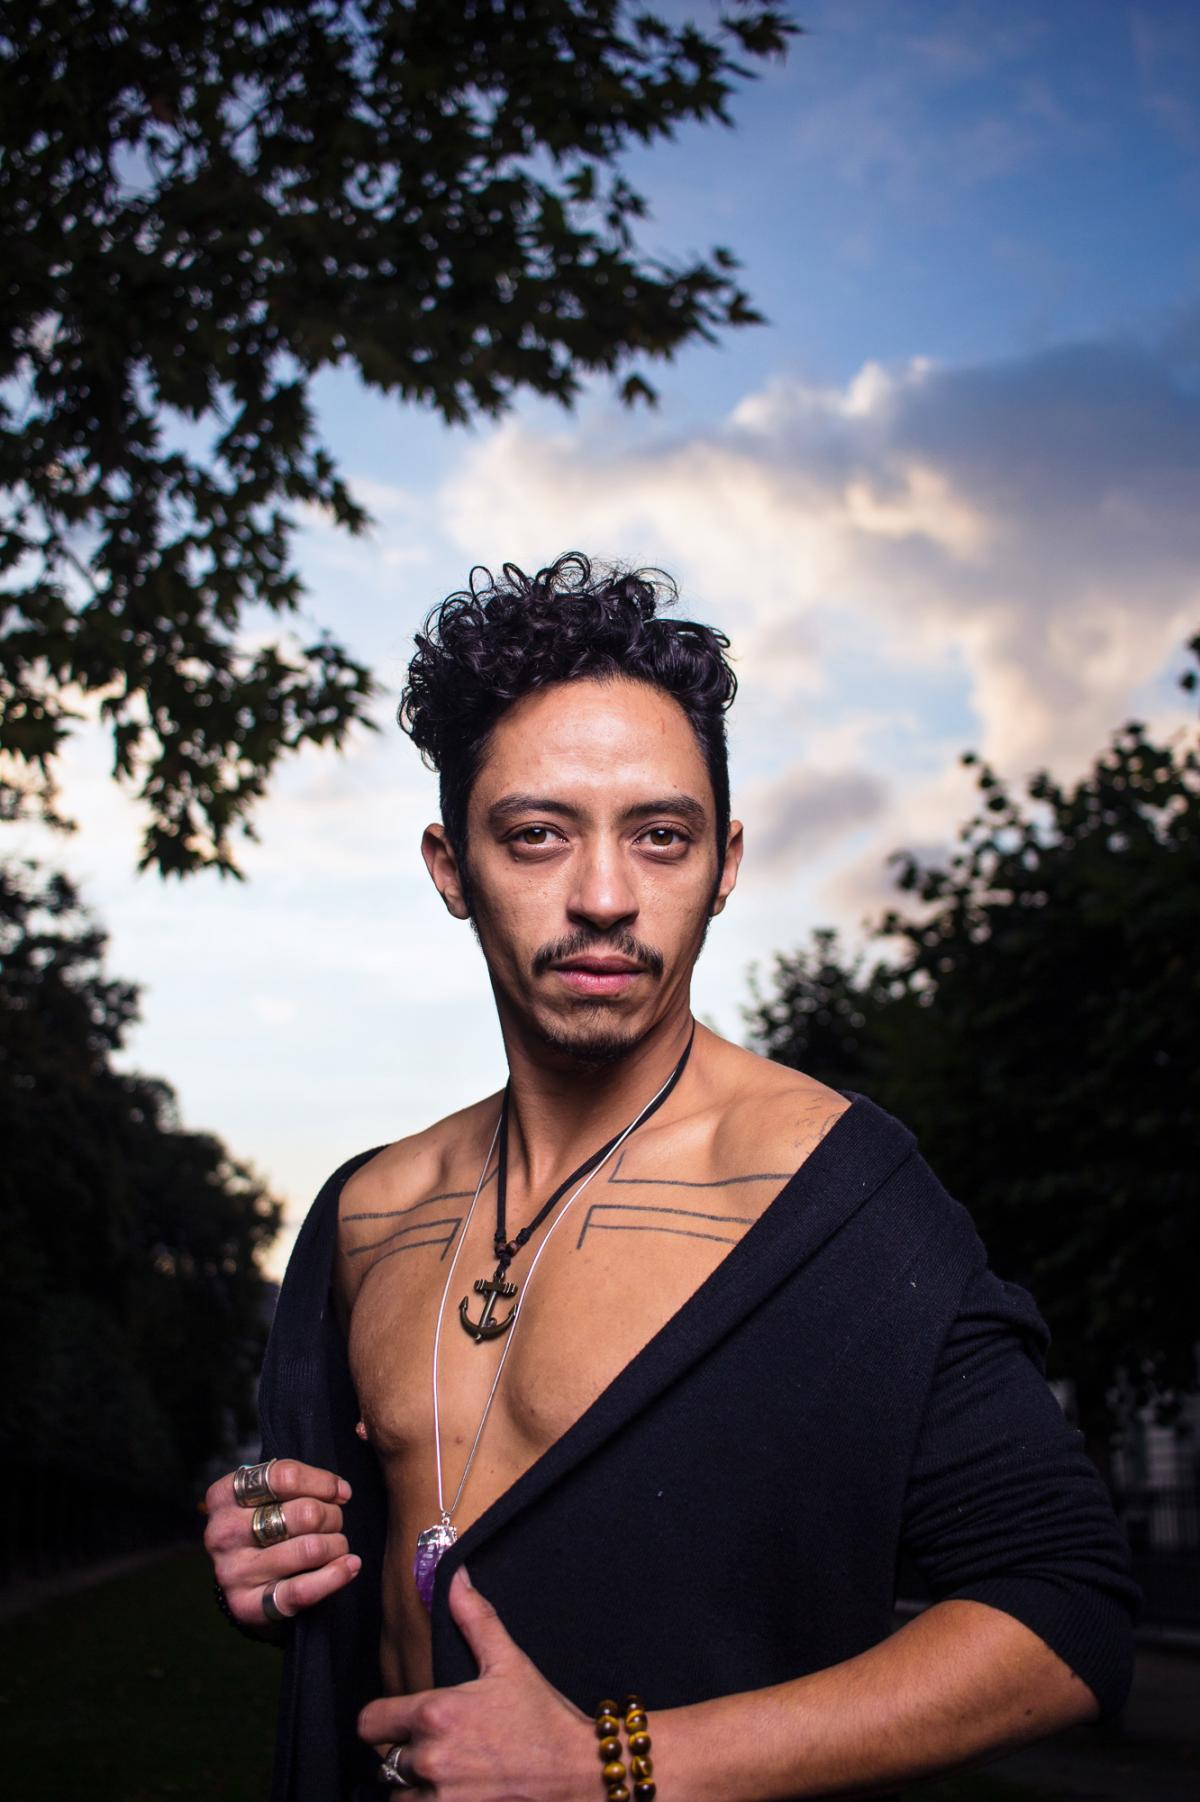 Jihan is a French-born, Algerian trans man living in Belgium. He identifies as Two-Spirit because of the strong masculine and feminine energies within himself. He says he hopes Limitless provides younger generations with the representation they need so th